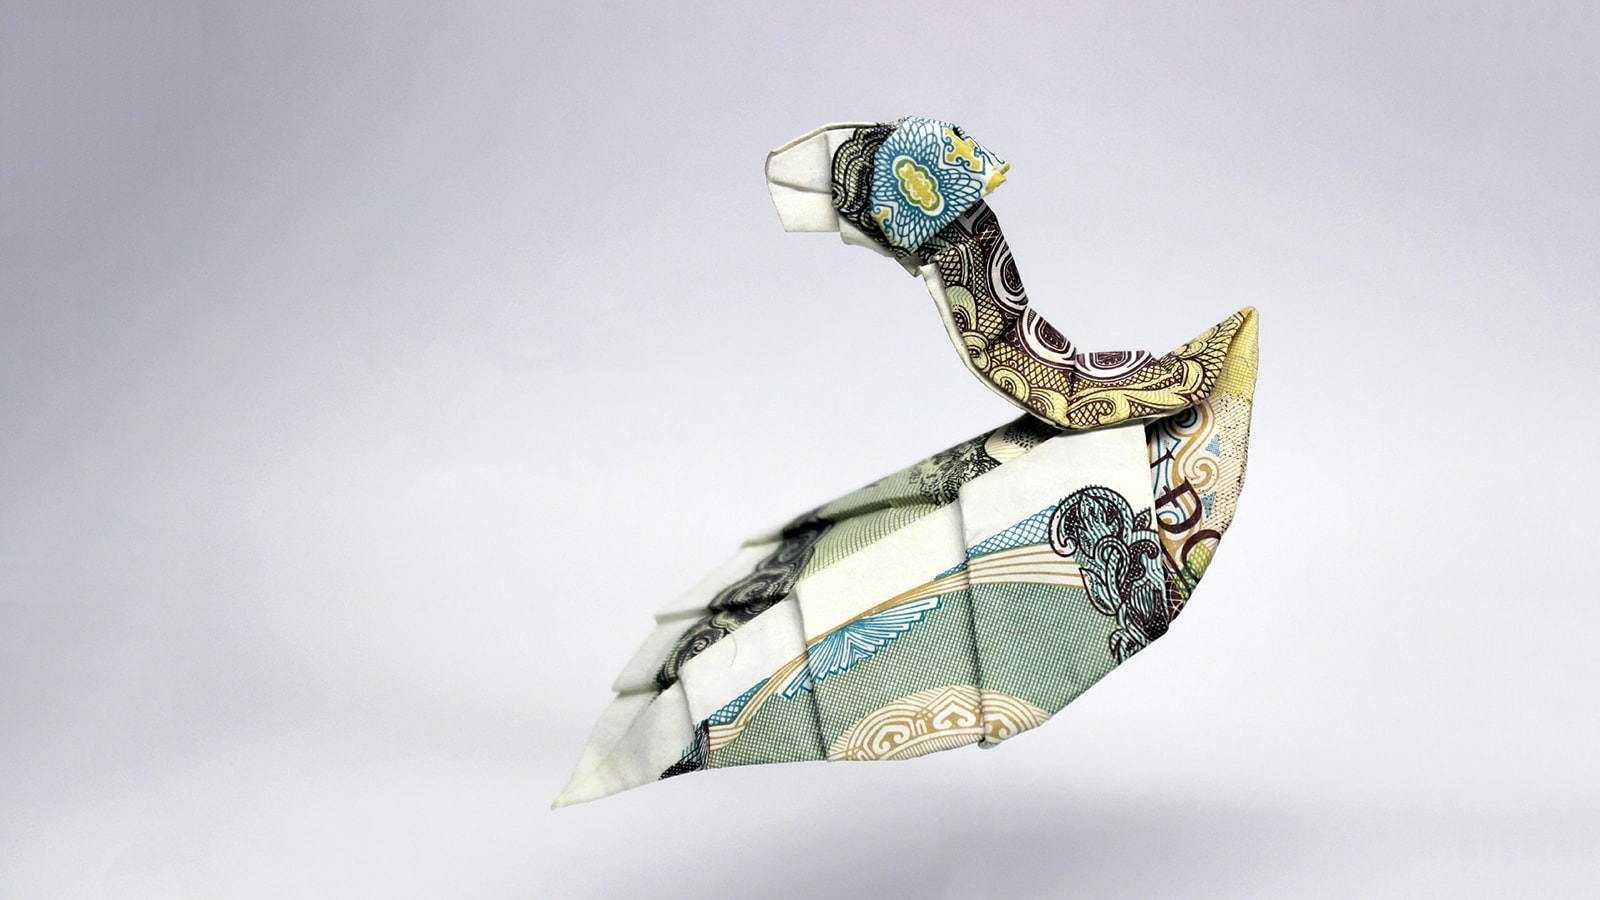 Money Frog Origami I Was Cent To Show You This Origami And Euro Should Take A Look